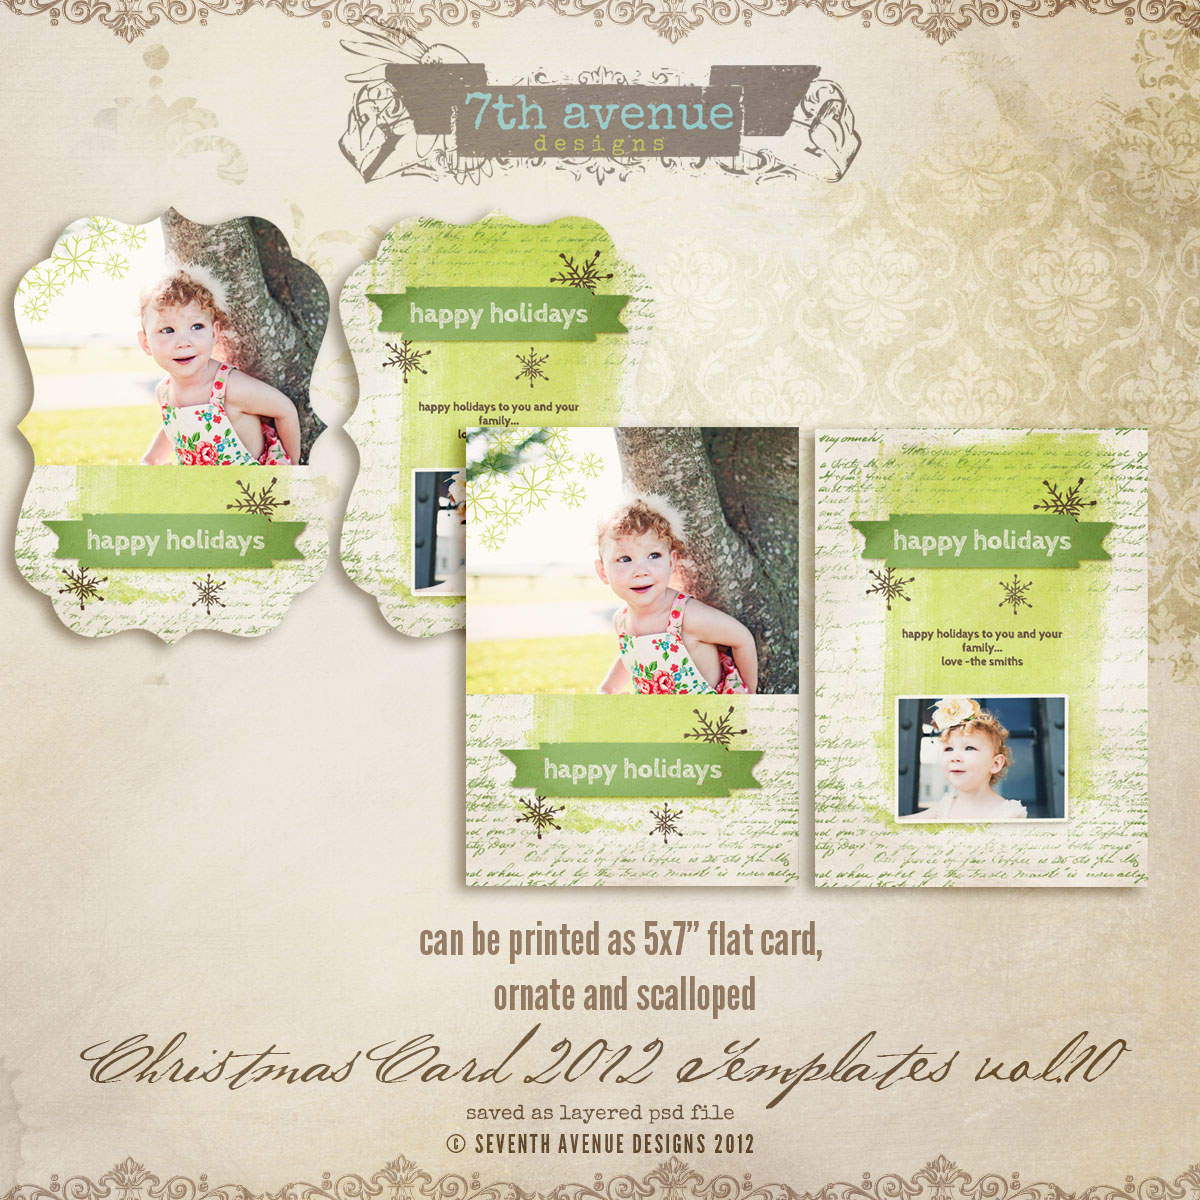 2012 Christmas Card Templates vol.10 -- 5x7 ornate